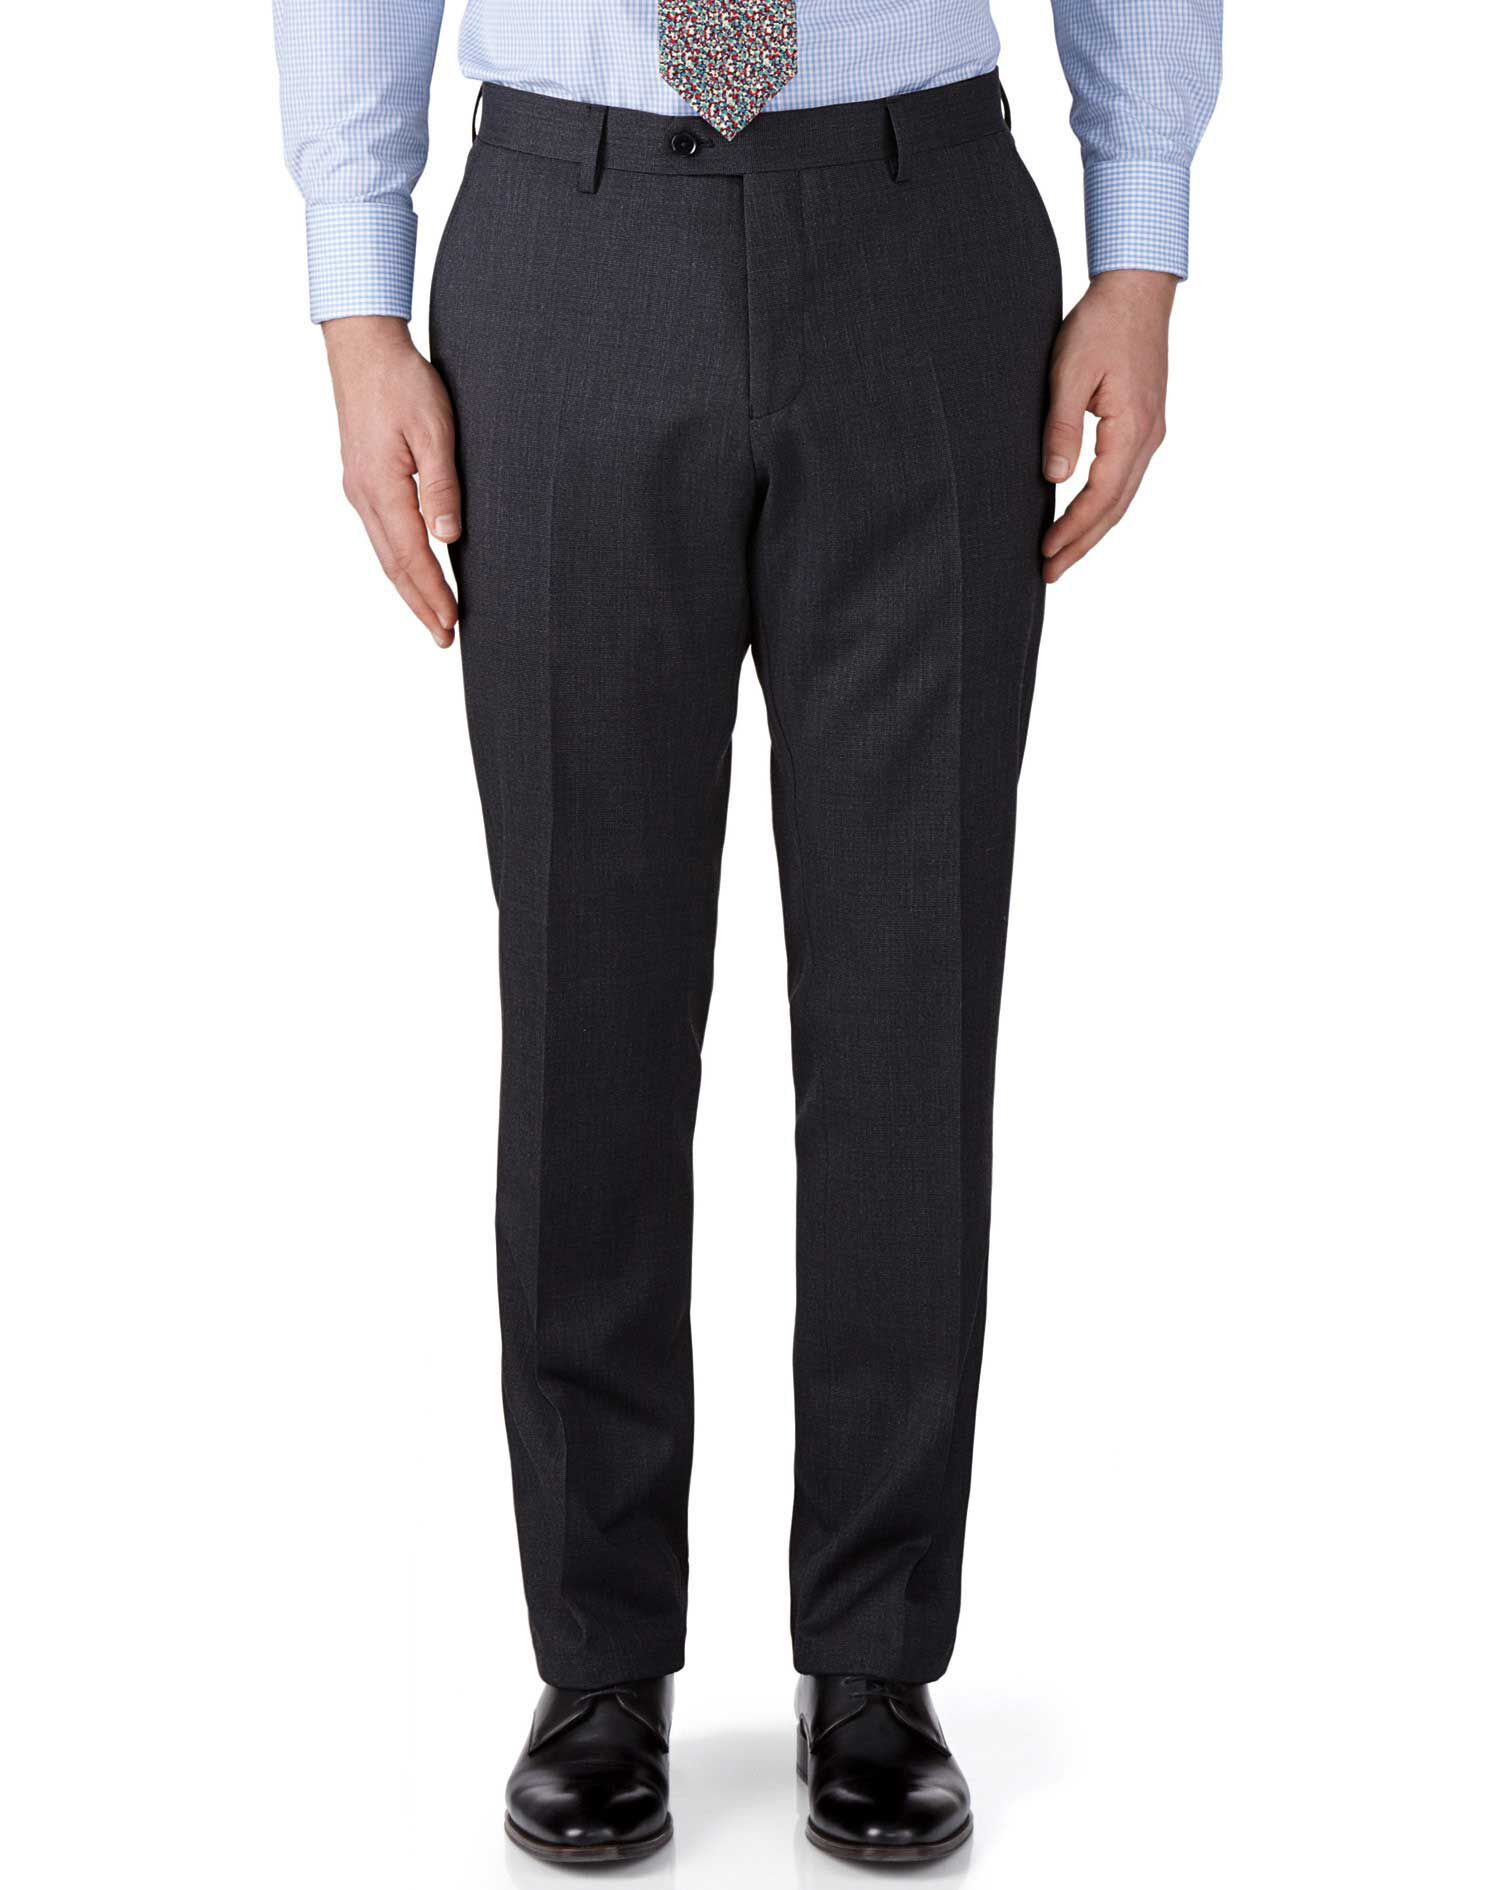 Charcoal Classic Fit End-On-End Business Suit Trousers Size W34 L34 by Charles Tyrwhitt